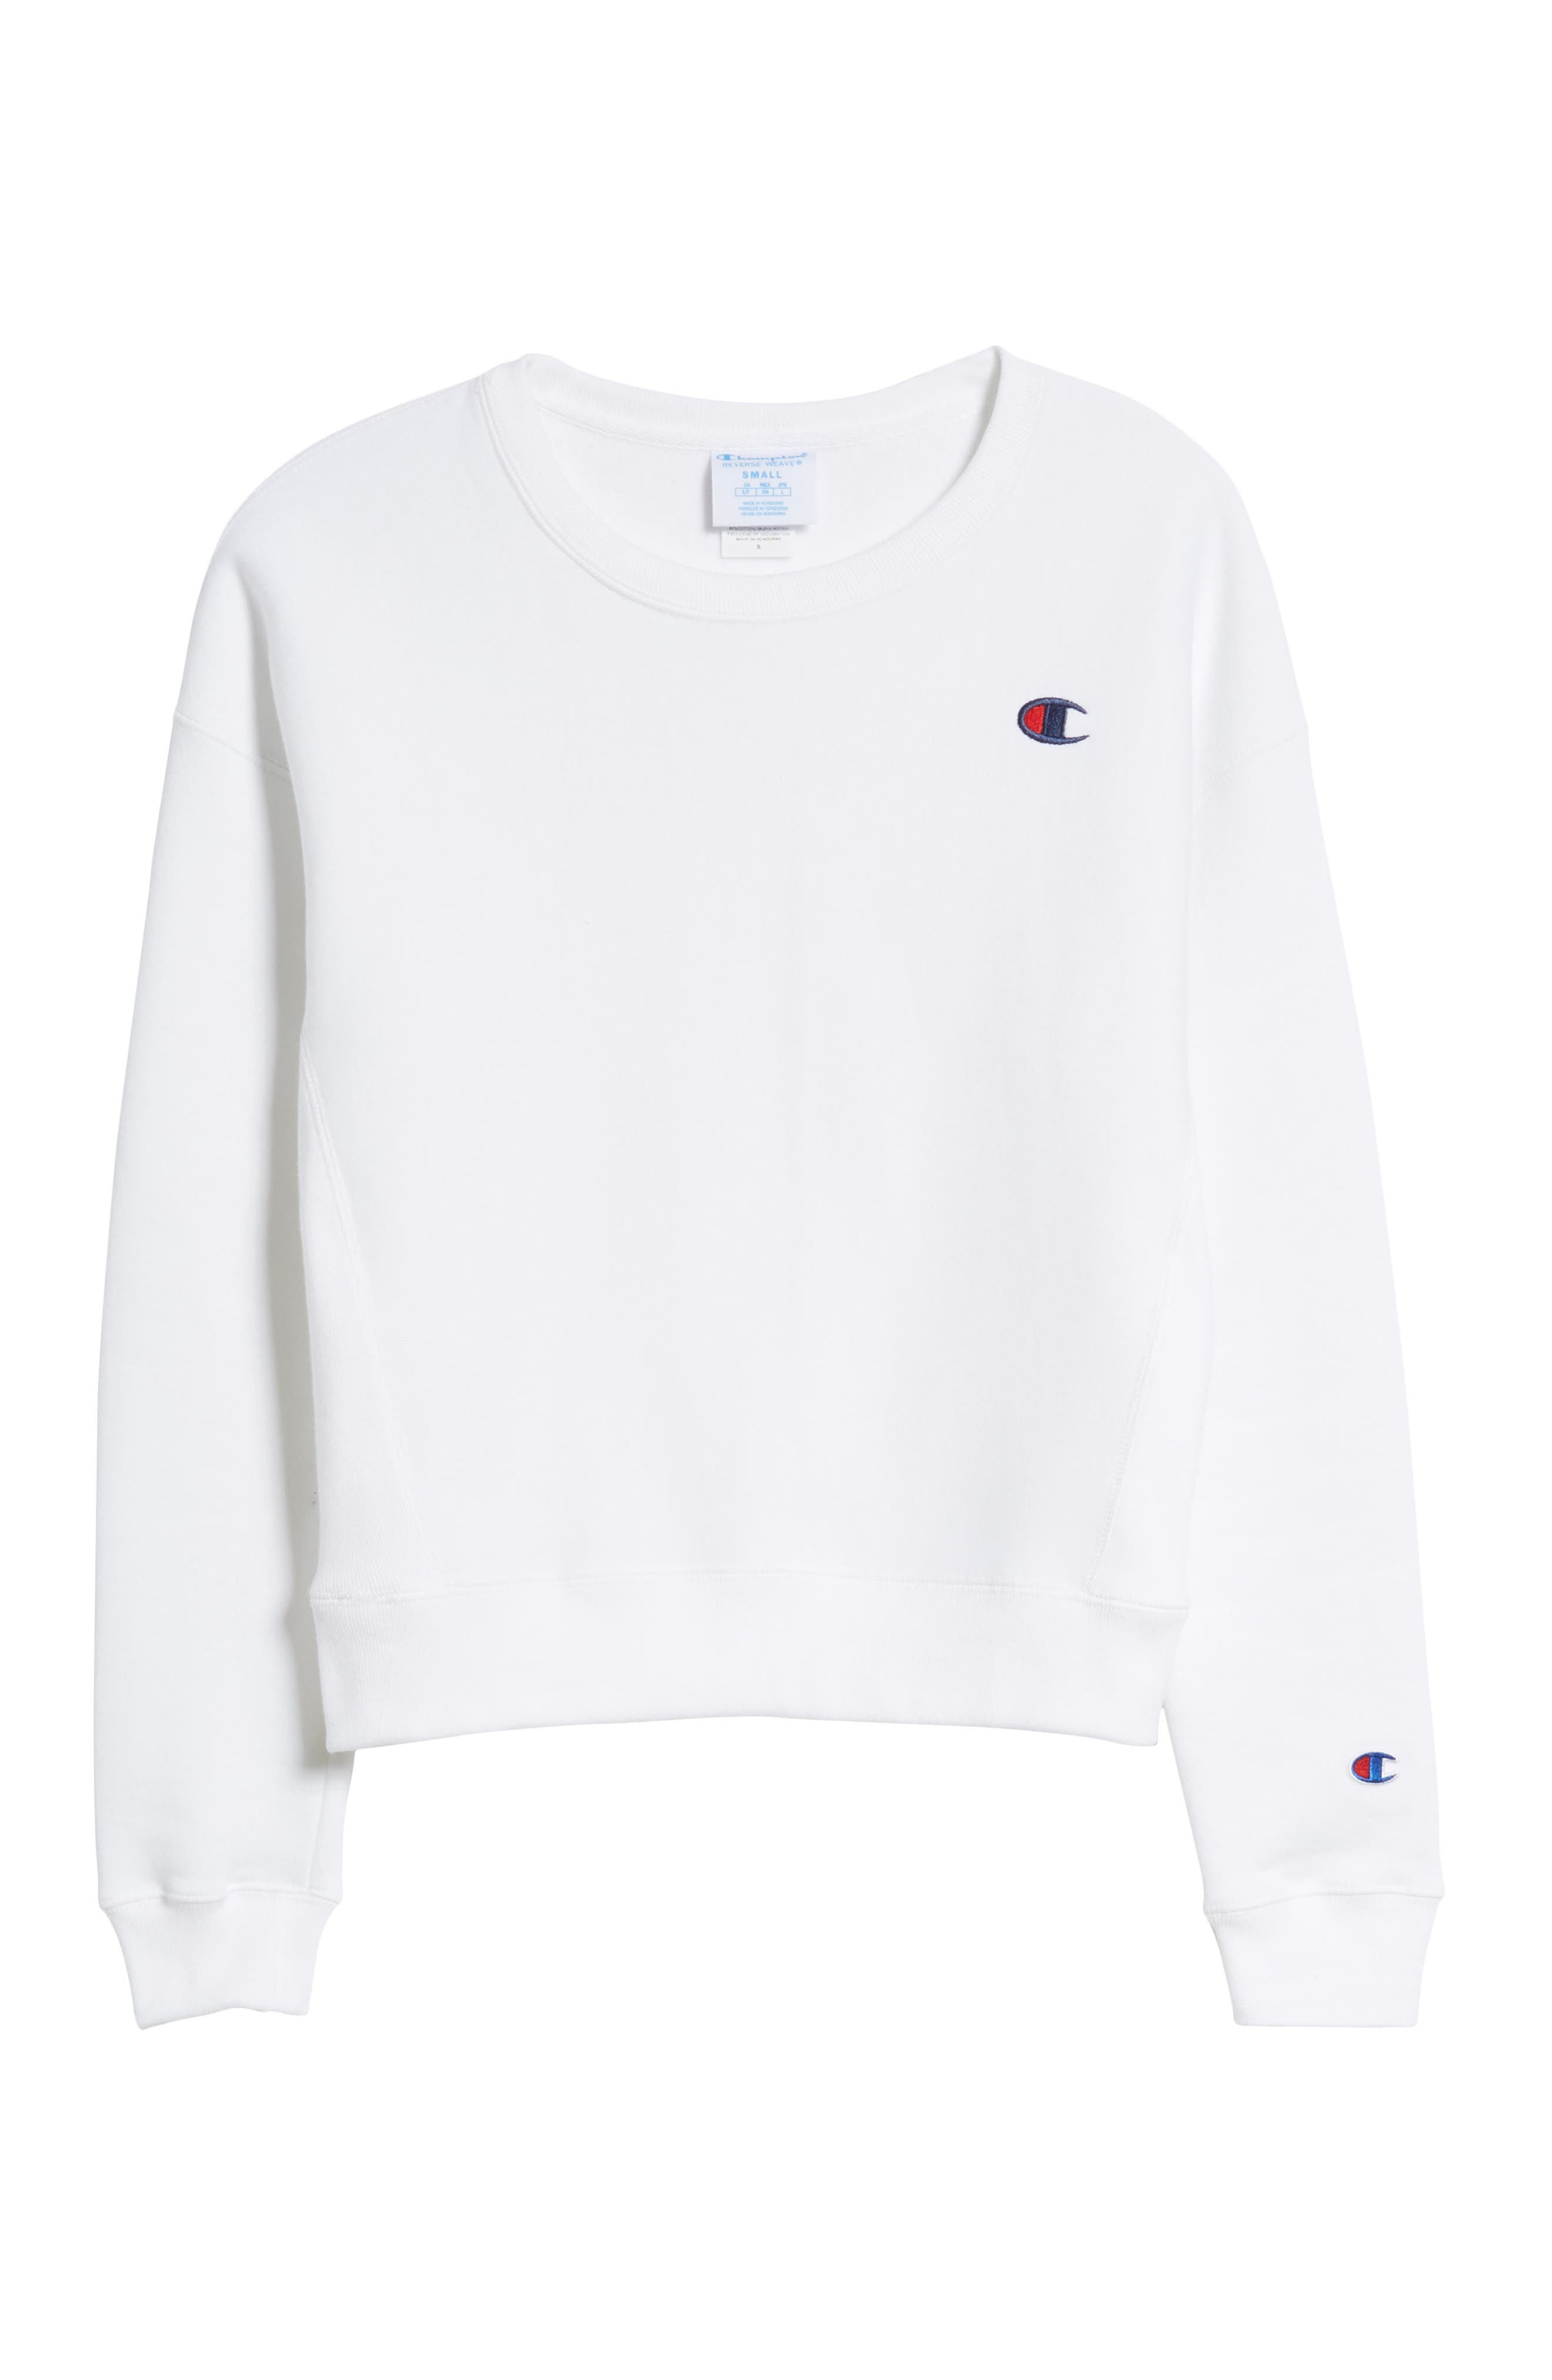 Reverse Weave Crew Sweatshirt,                             Alternate thumbnail 7, color,                             100